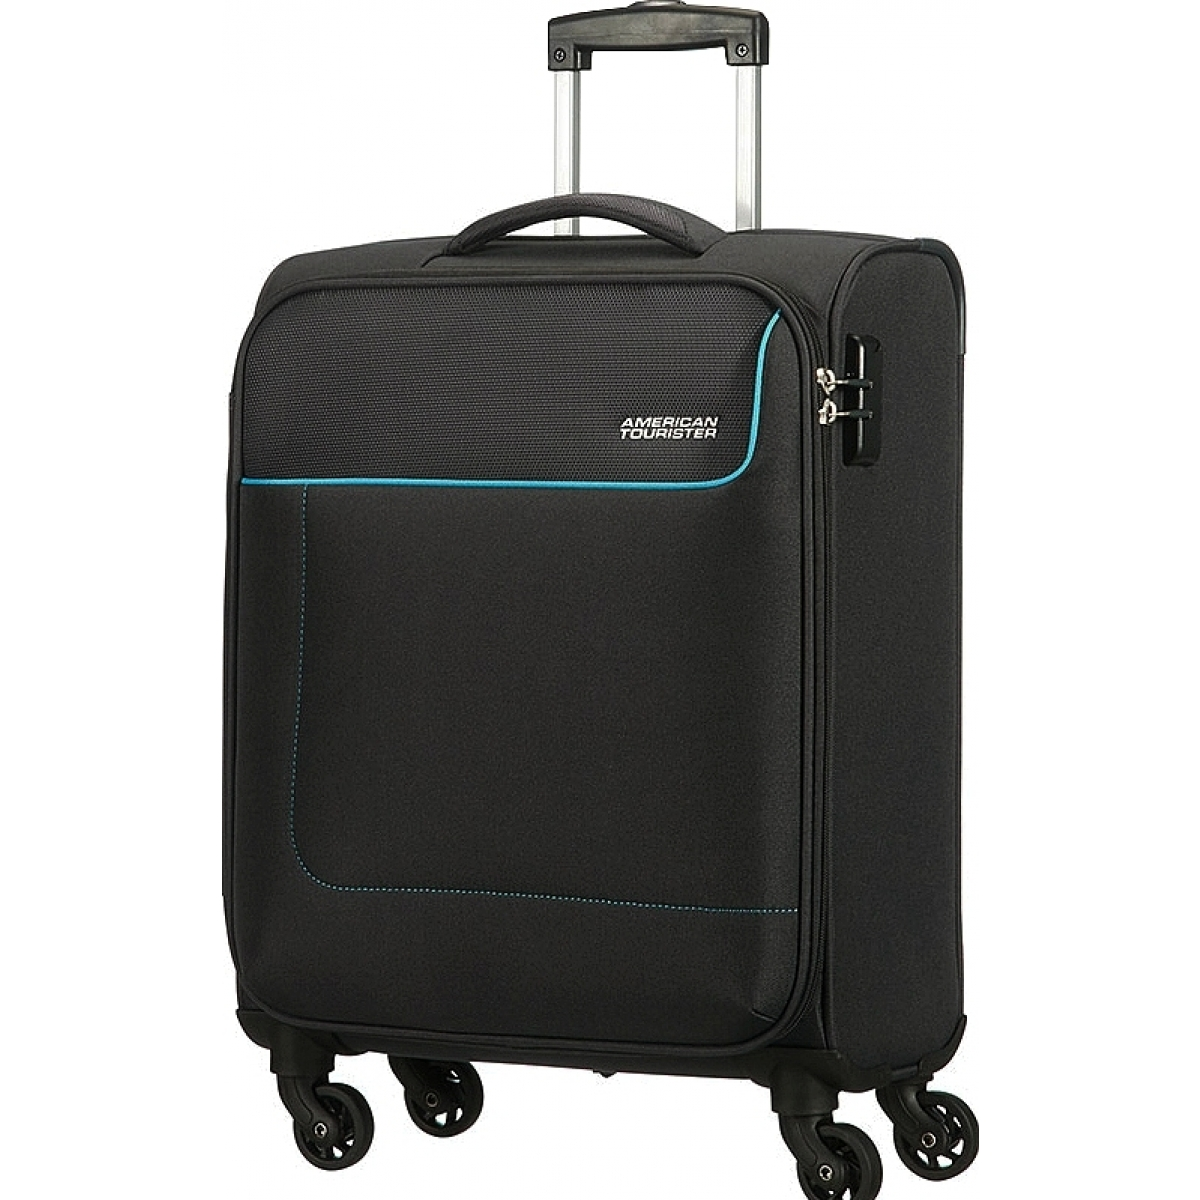 valise cabine american tourister funshine 55cm funshine07 couleur principale graphite. Black Bedroom Furniture Sets. Home Design Ideas